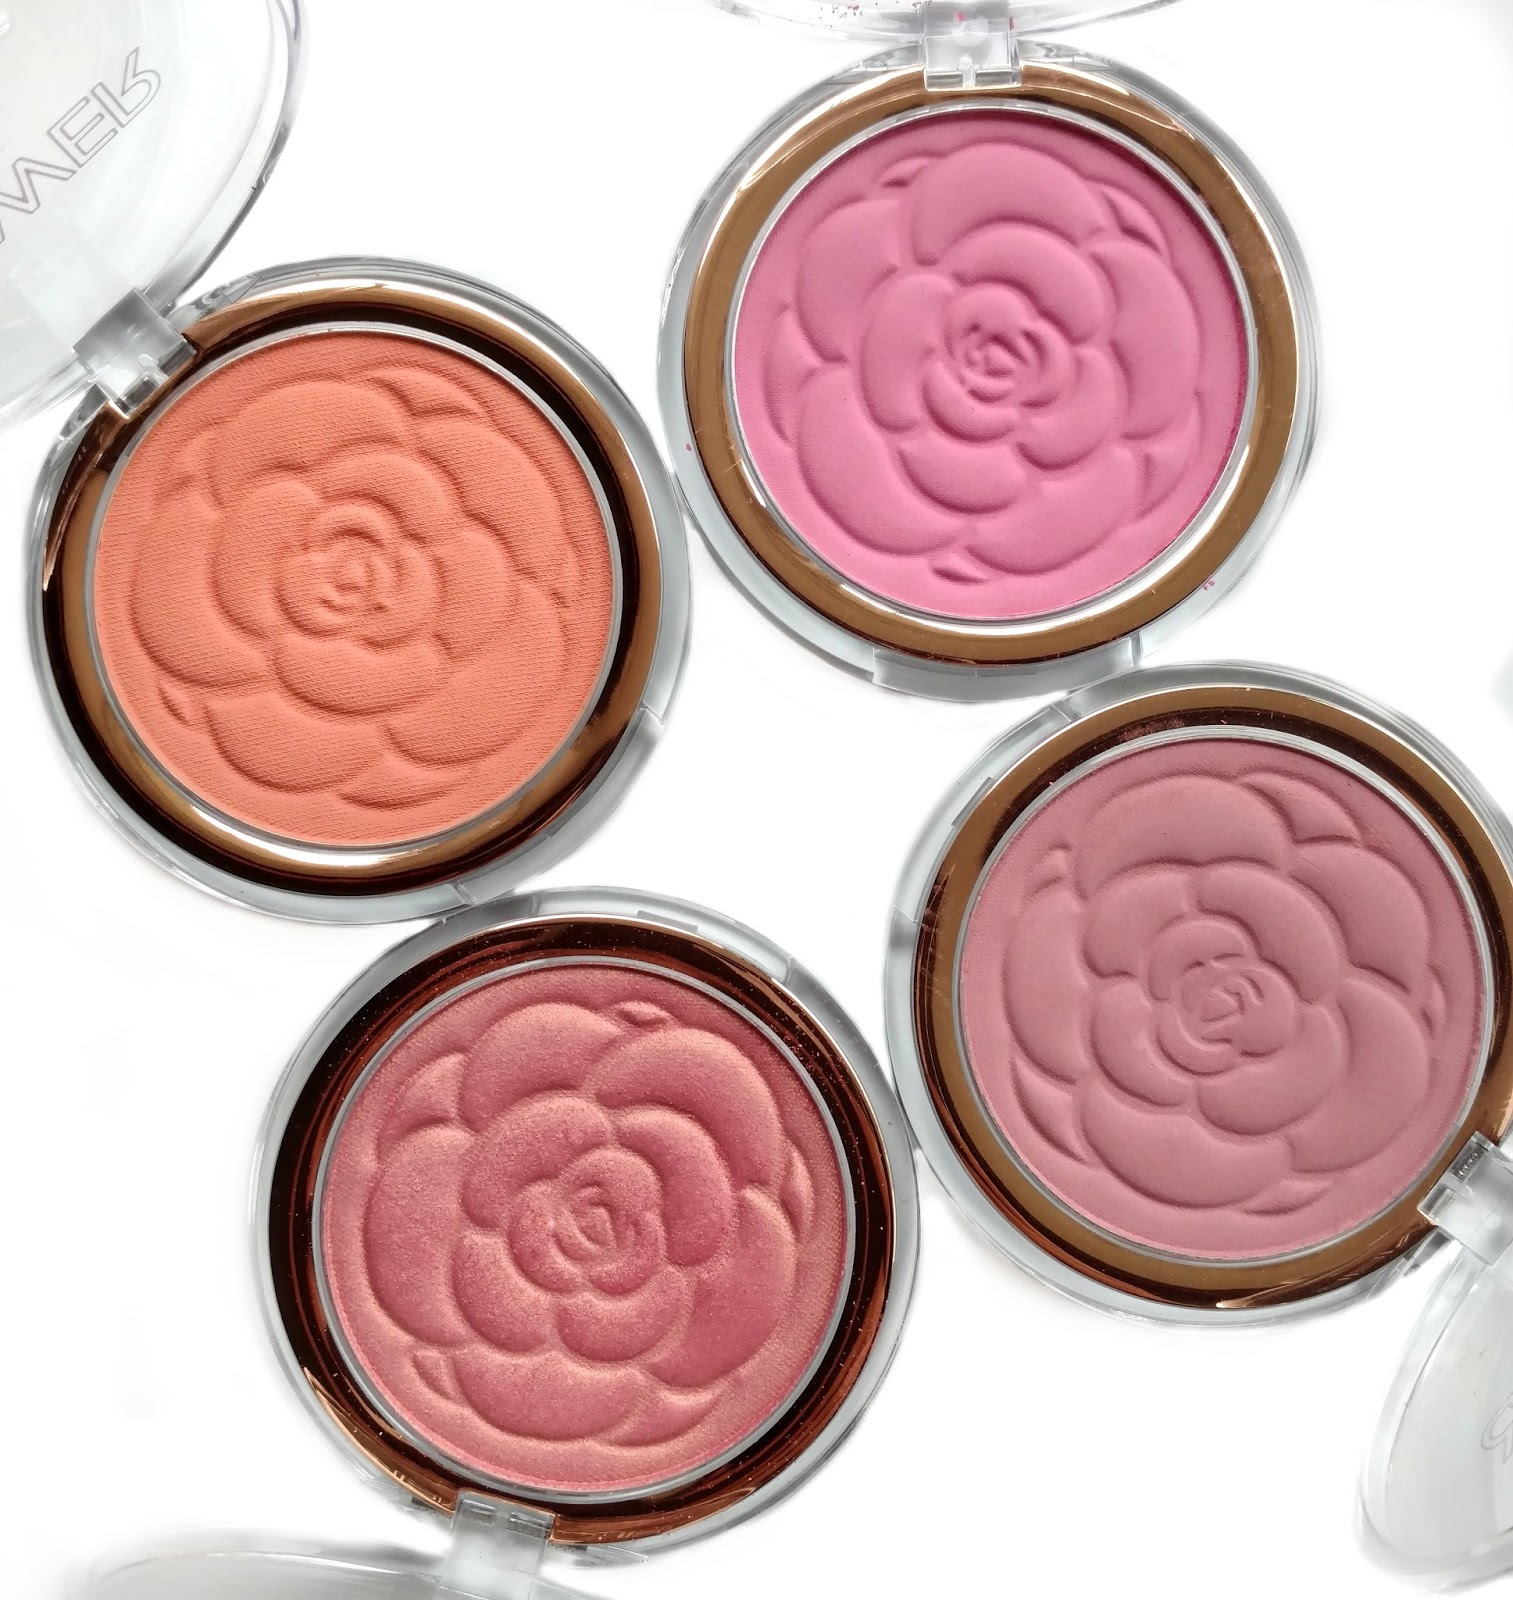 Image result for Flower Beauty Flower Pots Blush in Peach Primrose & Sweet Pea